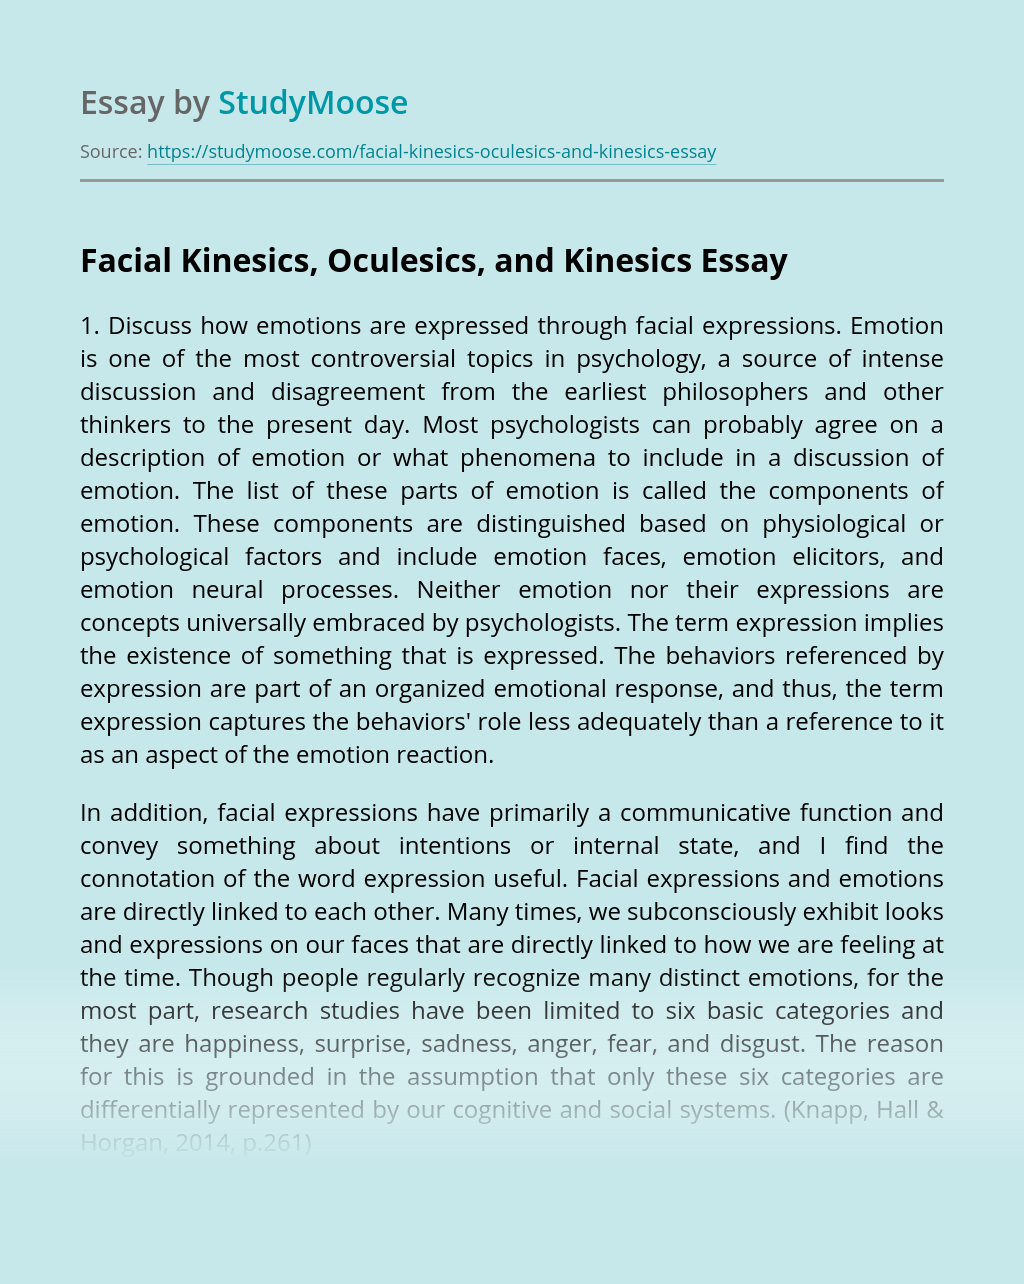 Facial Kinesics, Oculesics, and Kinesics